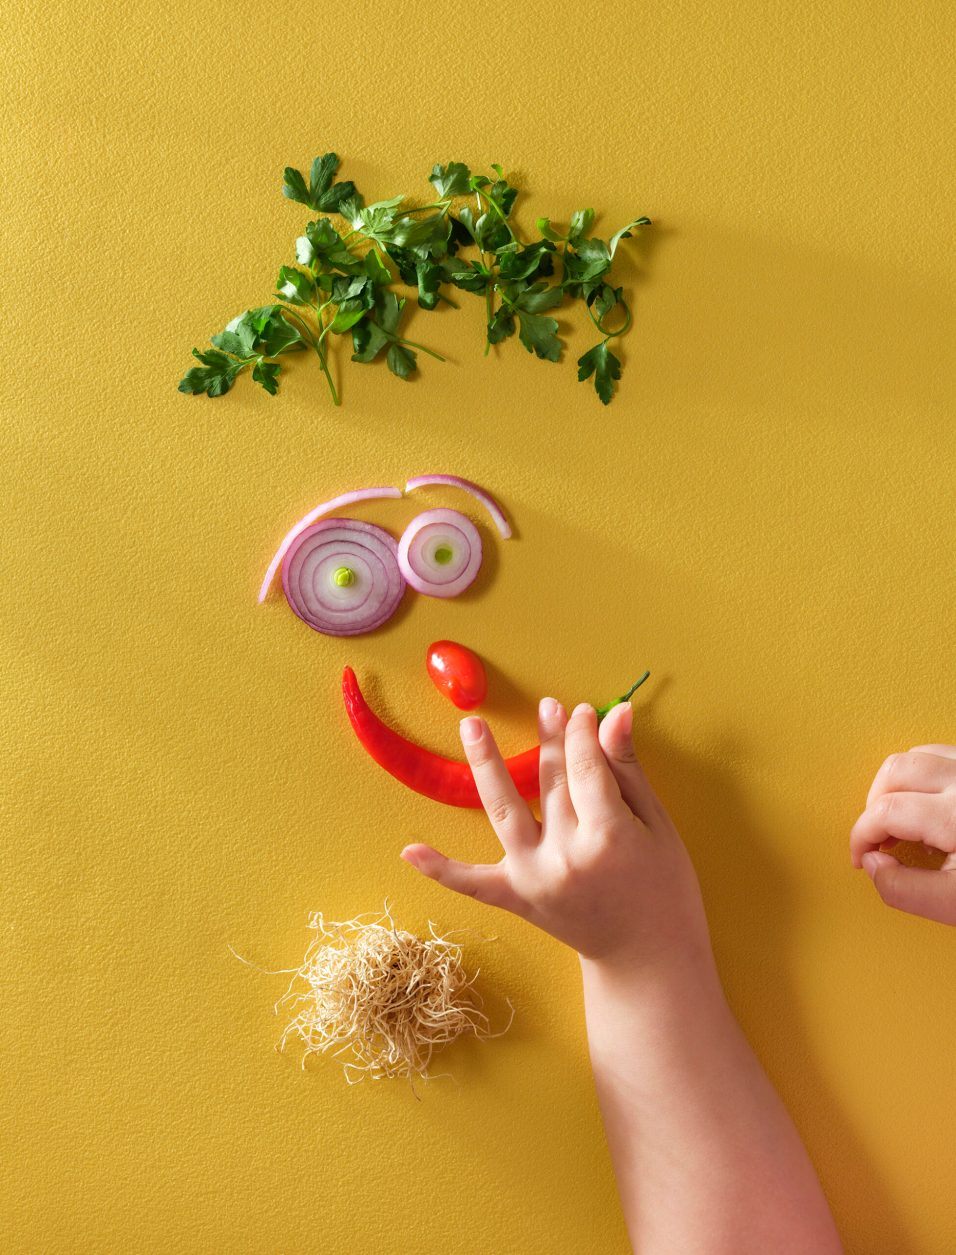 Making smiley face with vegetables by little girl